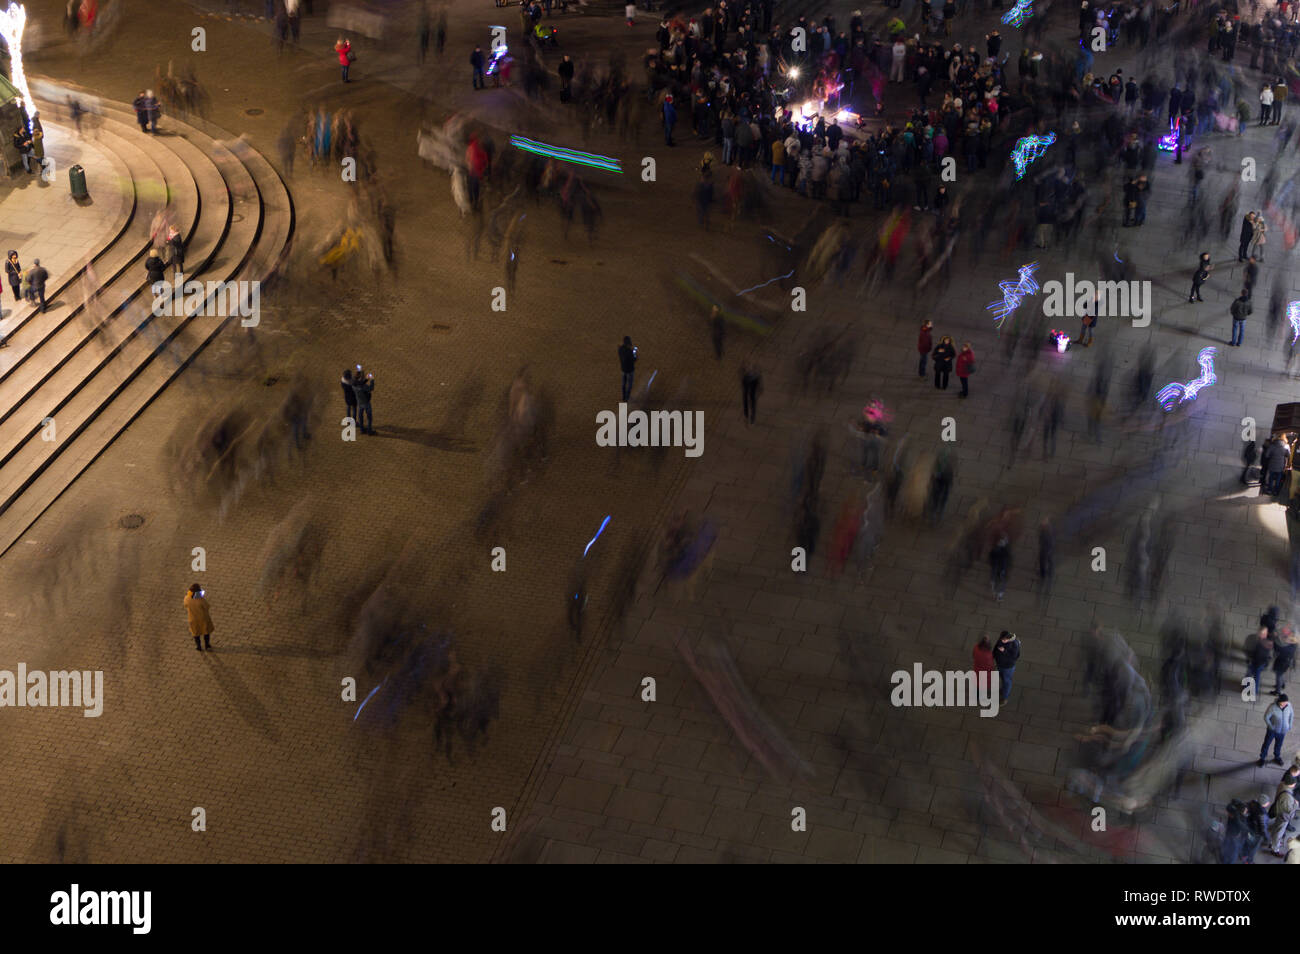 Crowded Main Pedestrian Square in Warsaw, Poland at Night - Stock Image